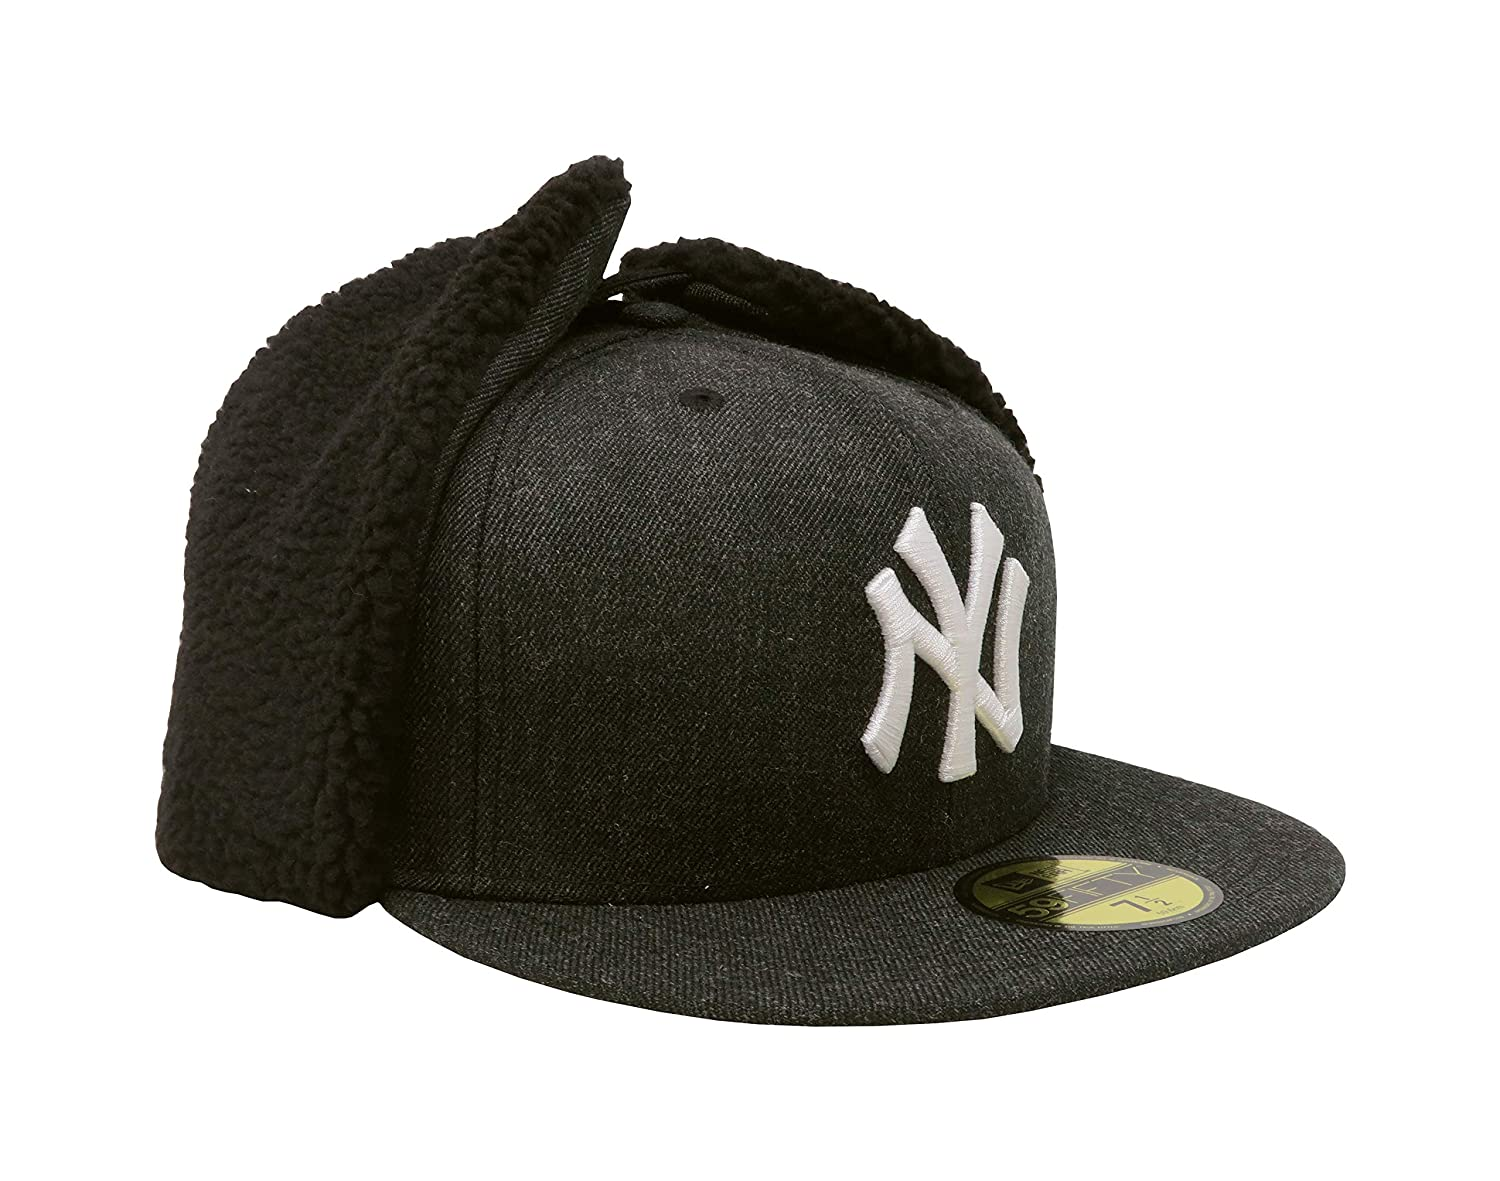 e1c0d676ee7ca4 Amazon.com : New Era 59Fifty Hat New York Yankees Heathered Dogear Black  Winter Cap : Sports & Outdoors